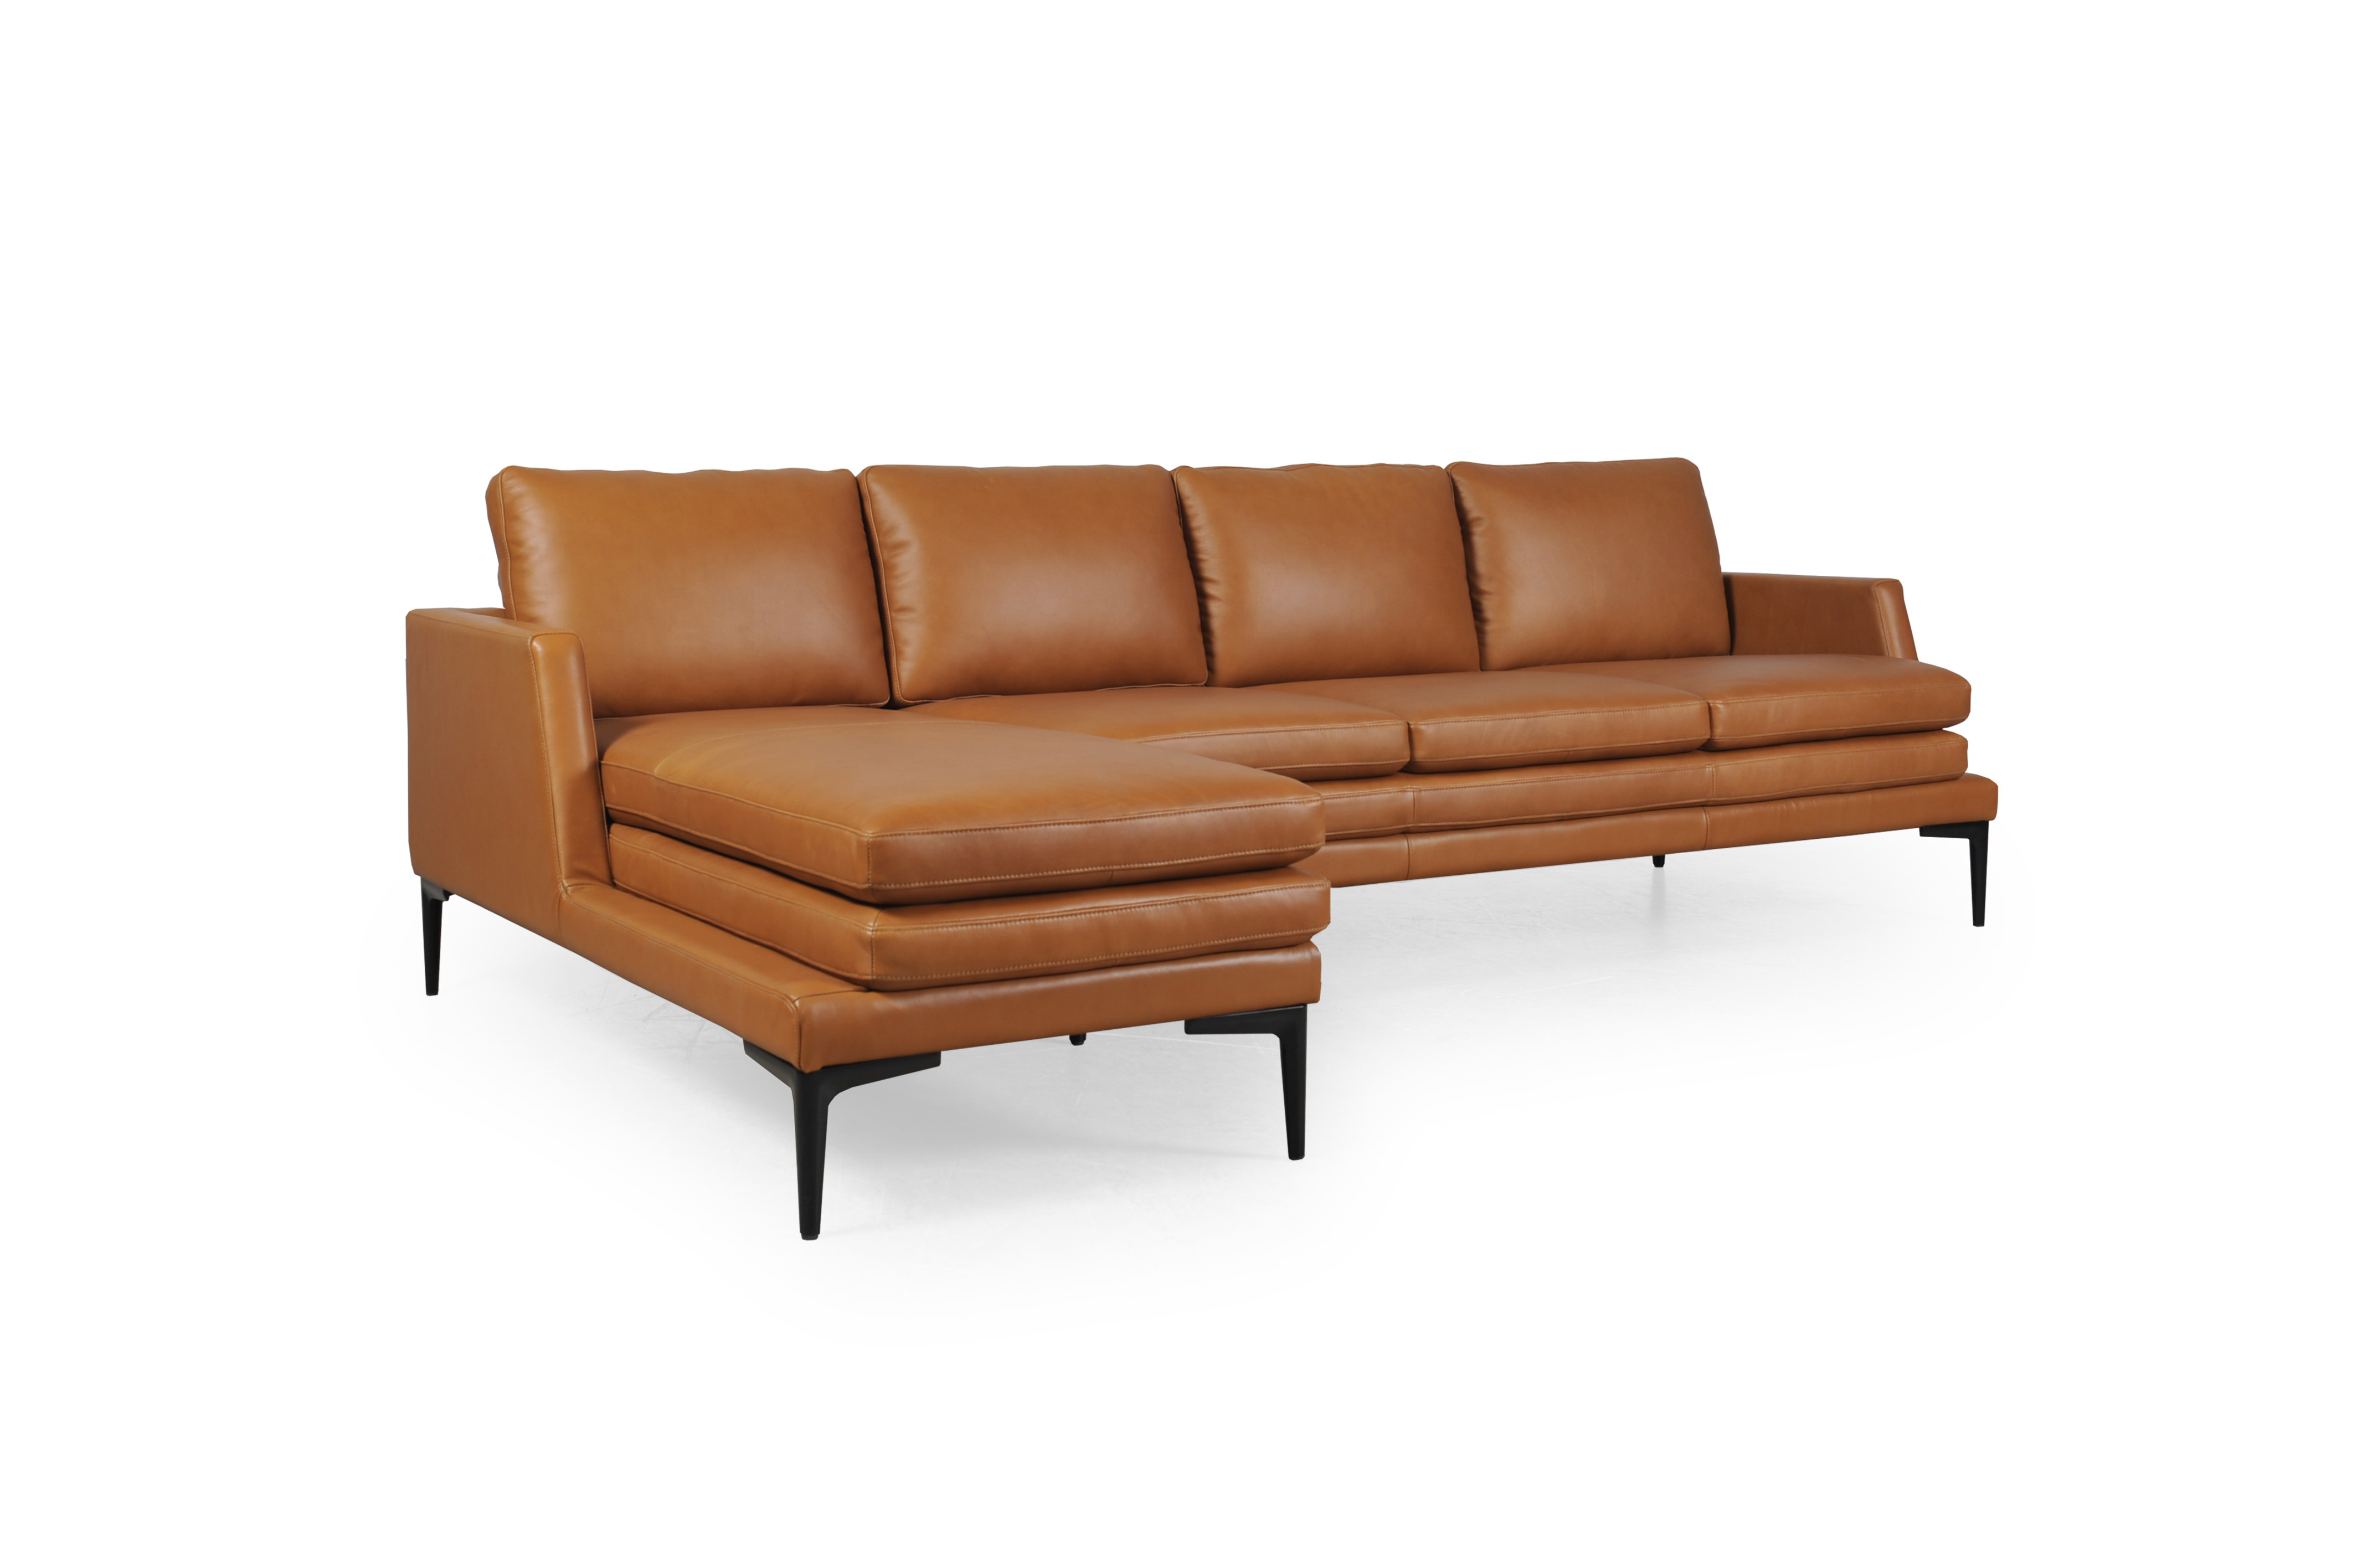 Astounding Rica Full Leather Tan Sectional 439Sc Sofas And Sectionals Gmtry Best Dining Table And Chair Ideas Images Gmtryco